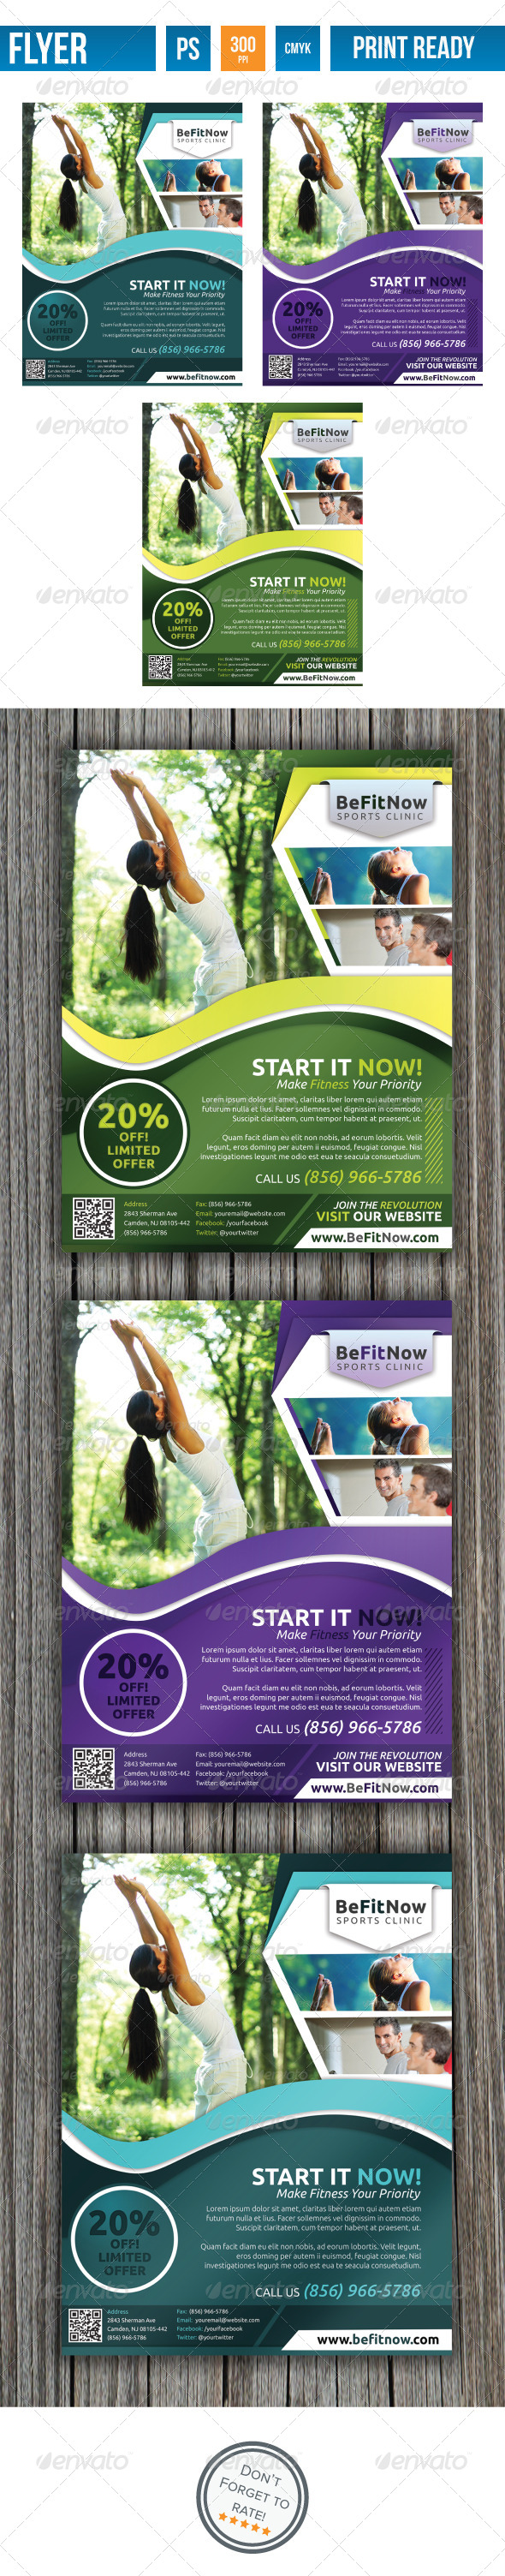 GraphicRiver Fitness Flyer V2 4041281